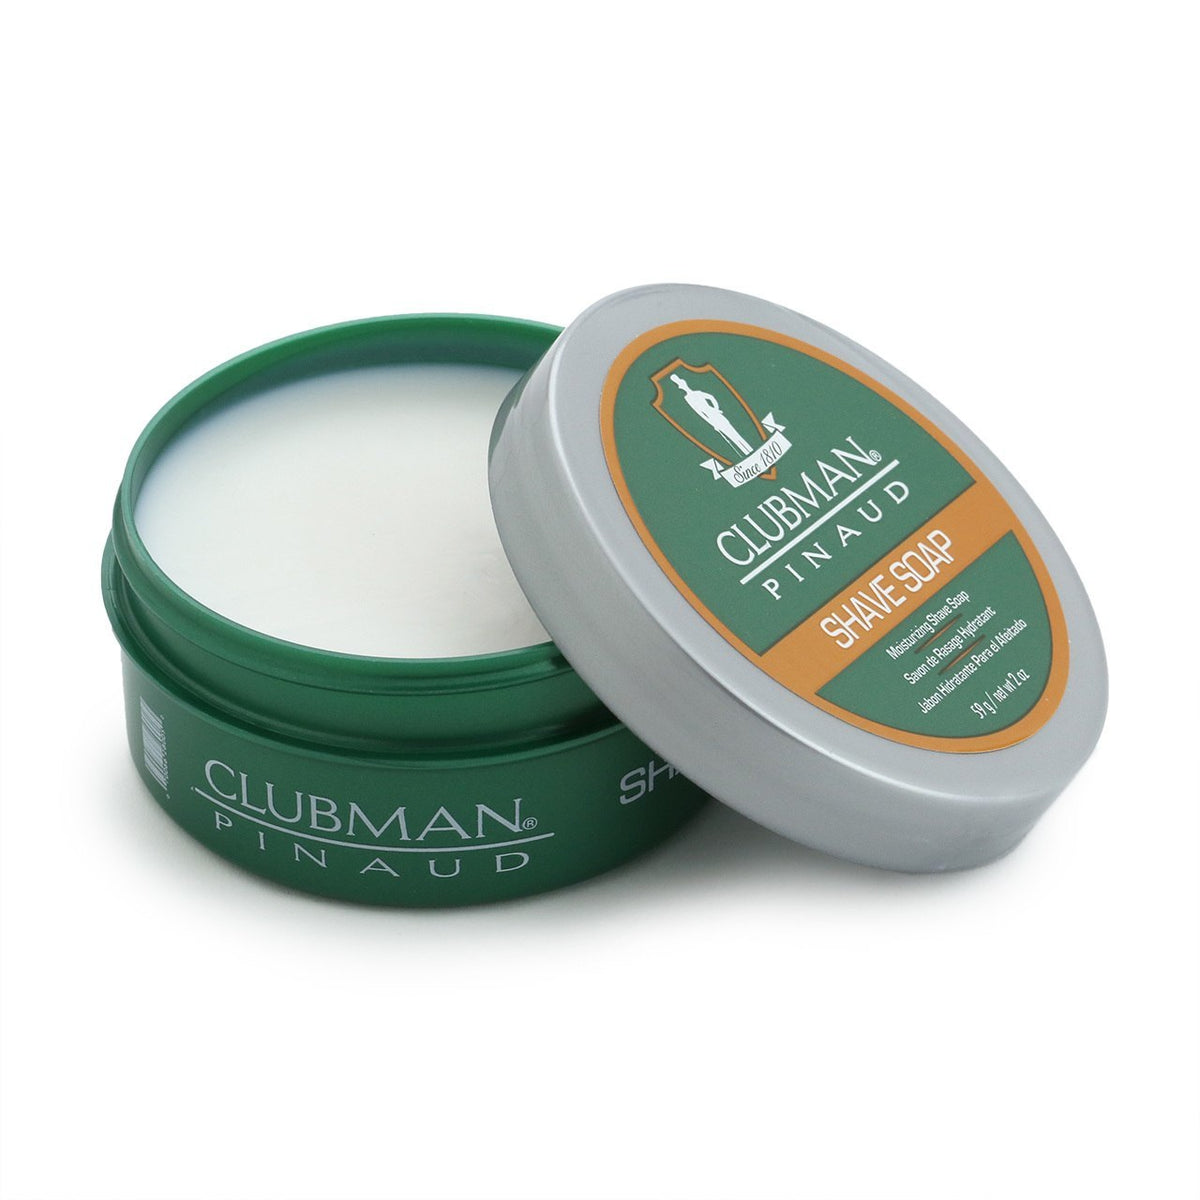 Clubman Pinaud Shave Soap